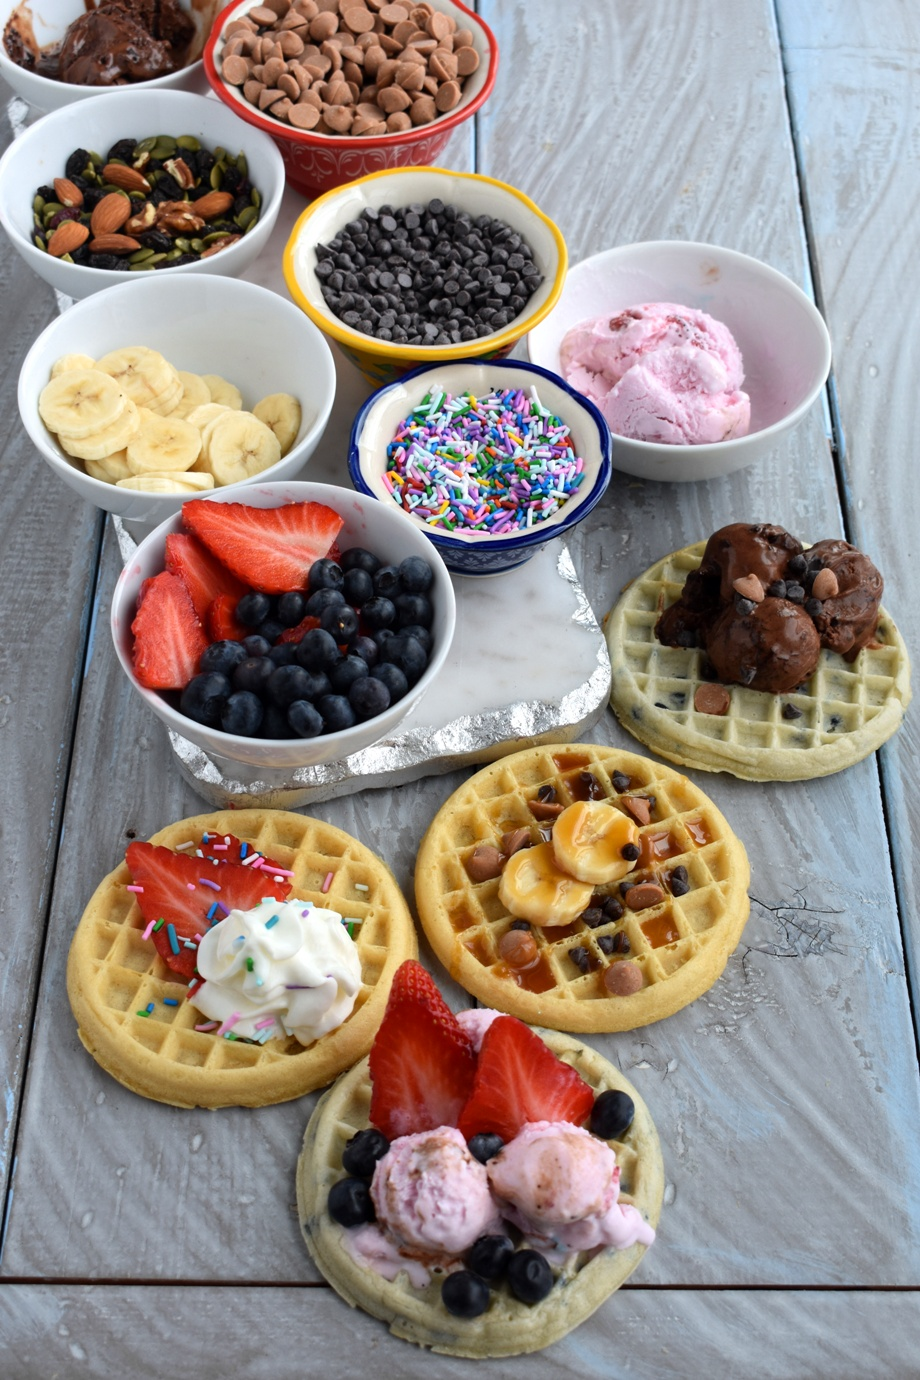 Dessert Waffle Bar is super easy to make and has tons of fun toppings like whipped cream, chocolate chips, caramel, bananas, strawberries, blueberries, chocolate sauce, nuts, sprinkles and different kinds of ice cream.